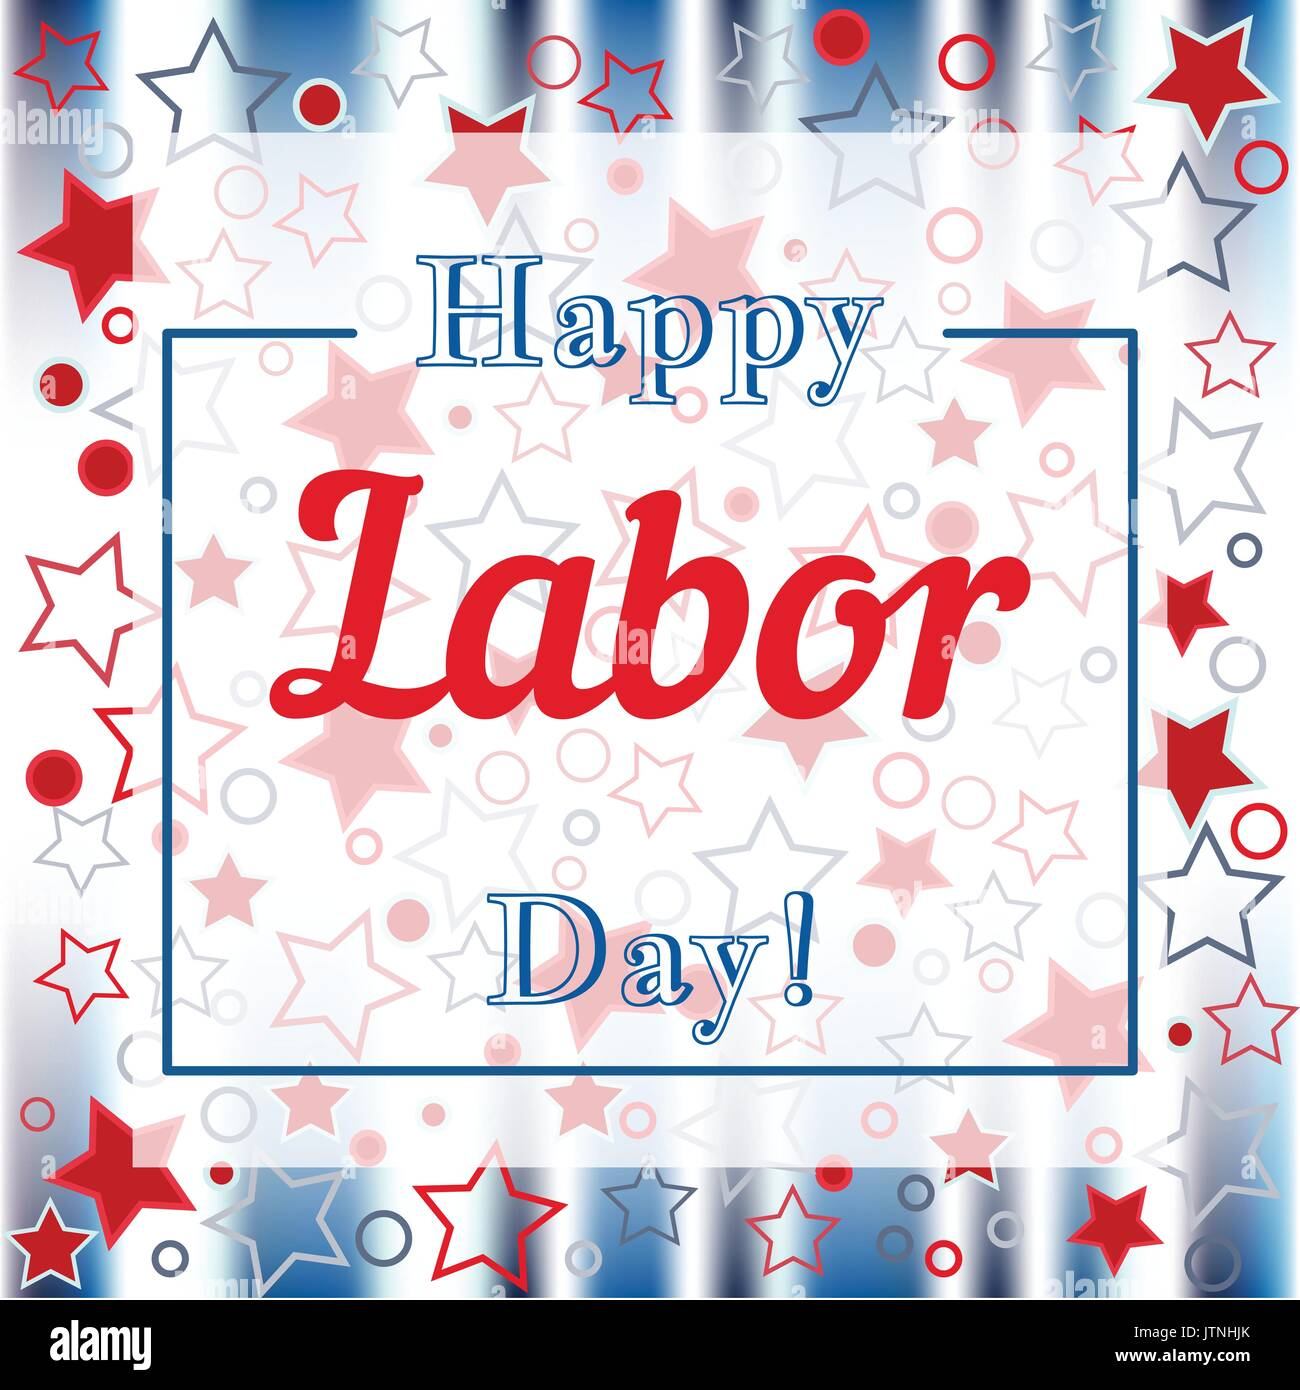 May labour day poster banner stock photos may labour day poster holiday greetings illustration labor day stock image kristyandbryce Image collections